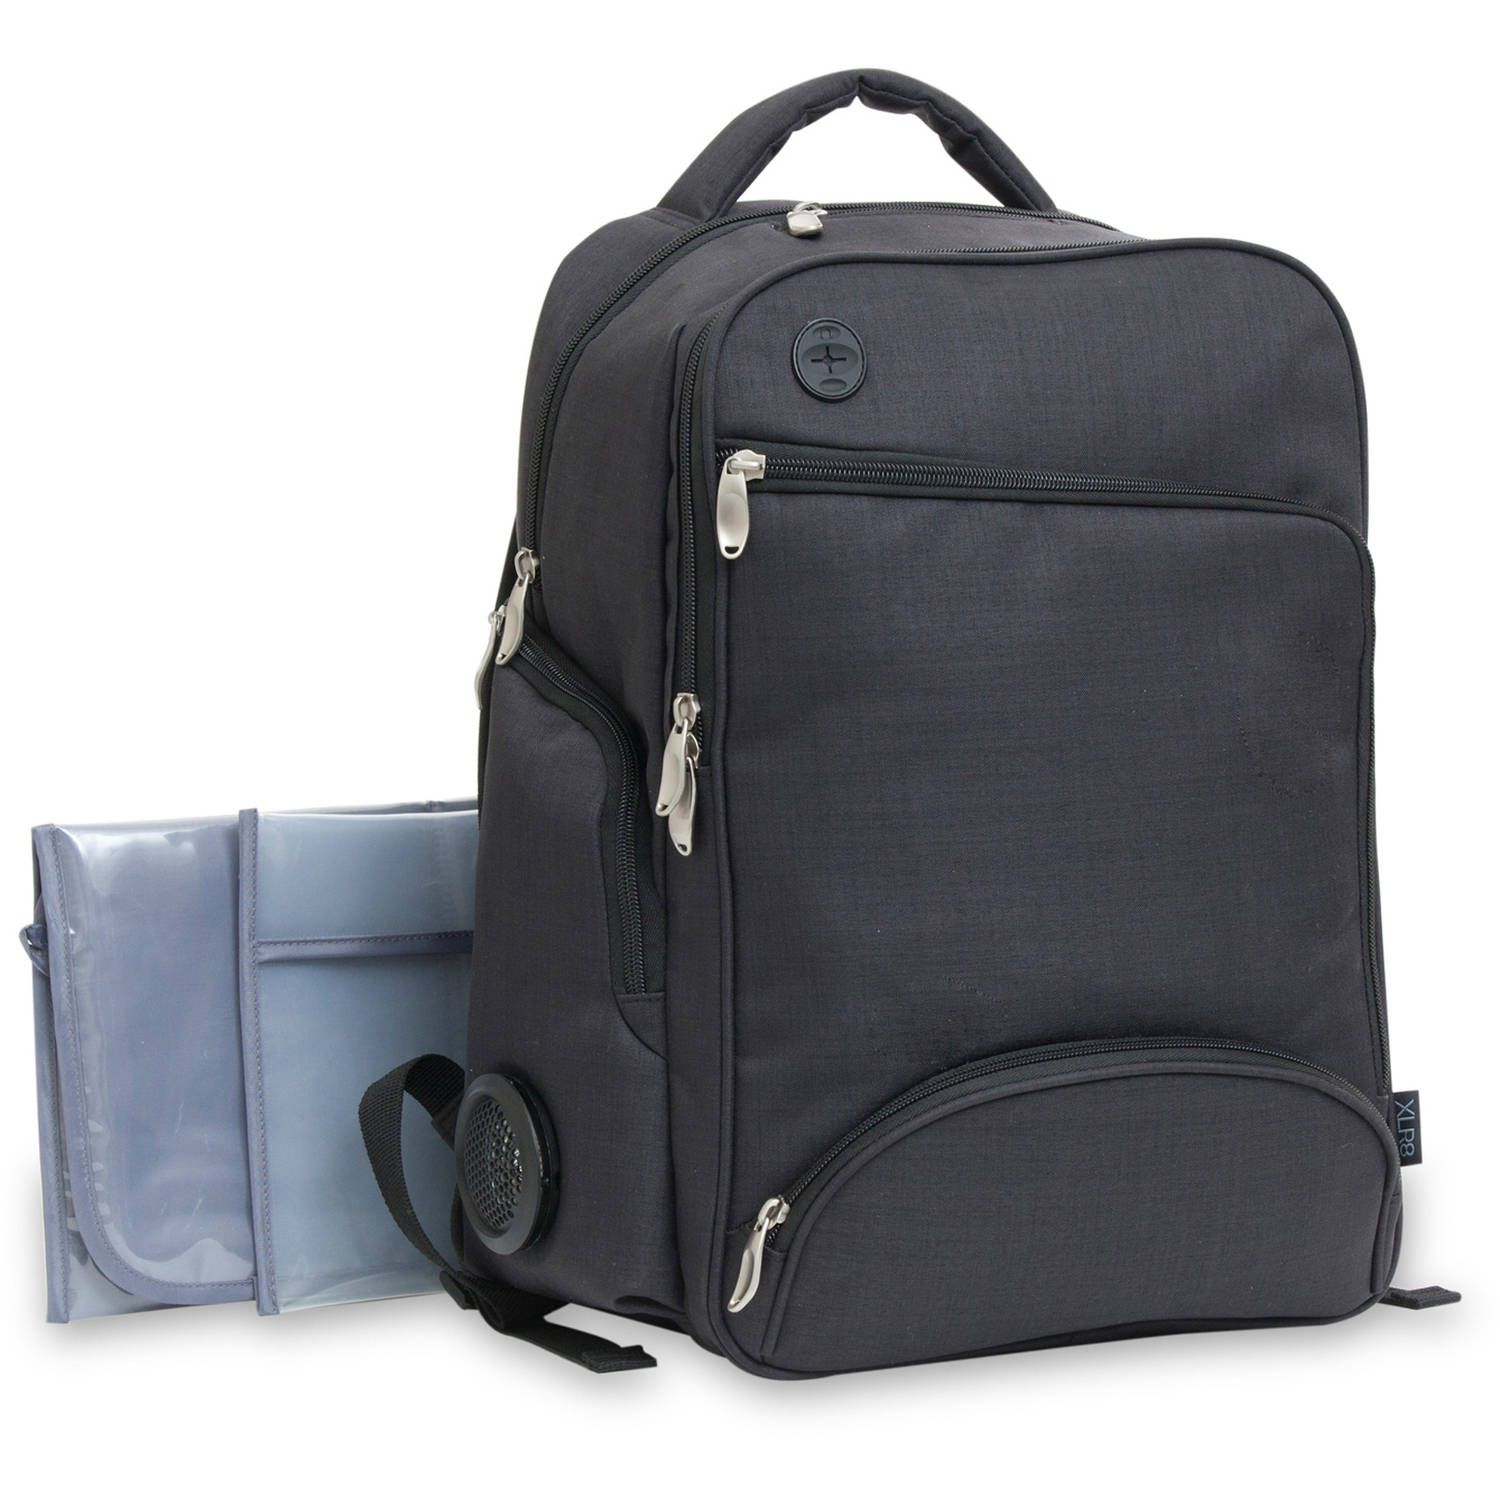 a377926ae0 The 8 Best Backpack Diaper Bags of 2019